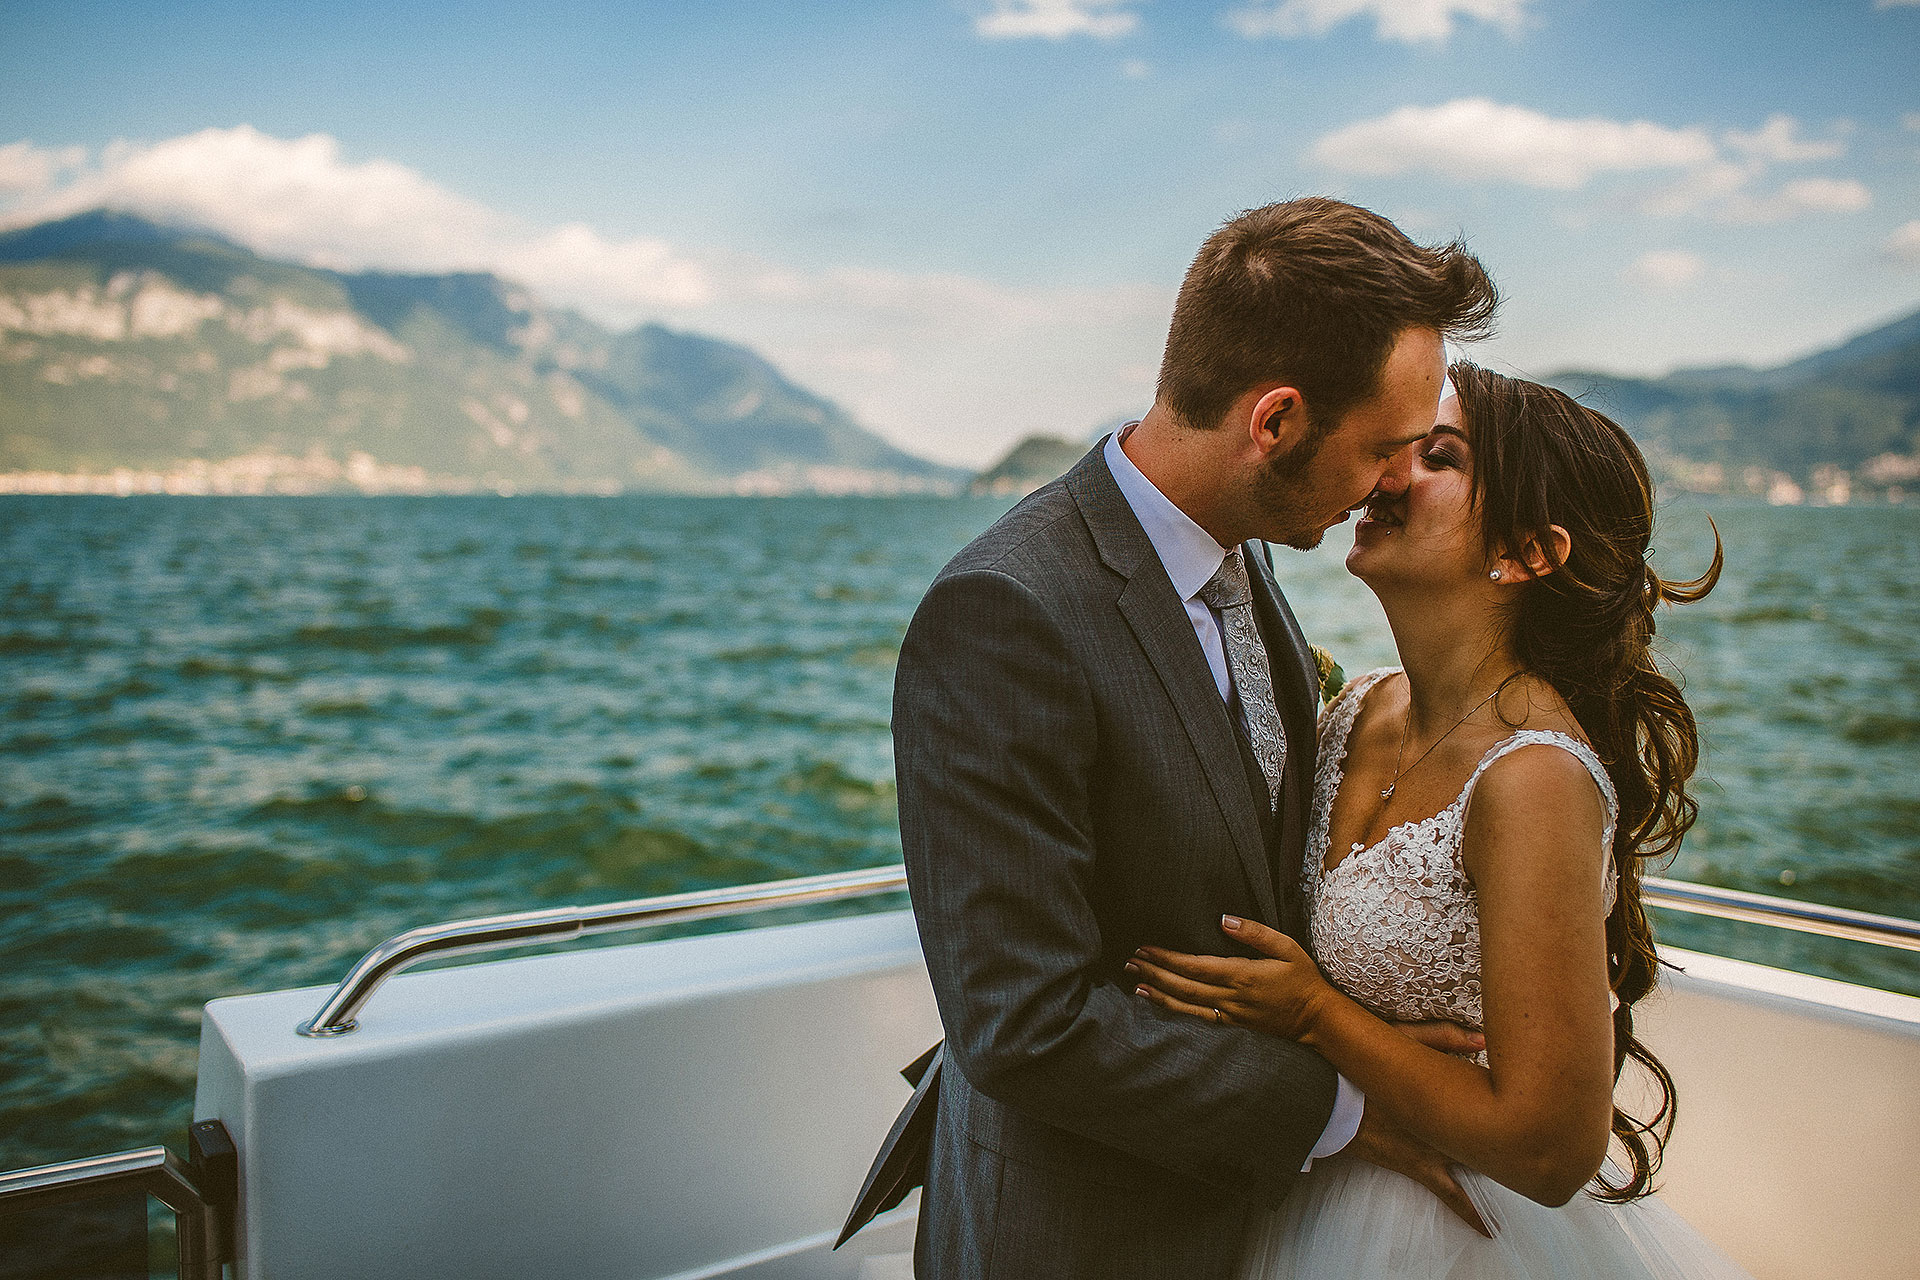 Matrimonio In Ticino : Matrimonio in svizzera